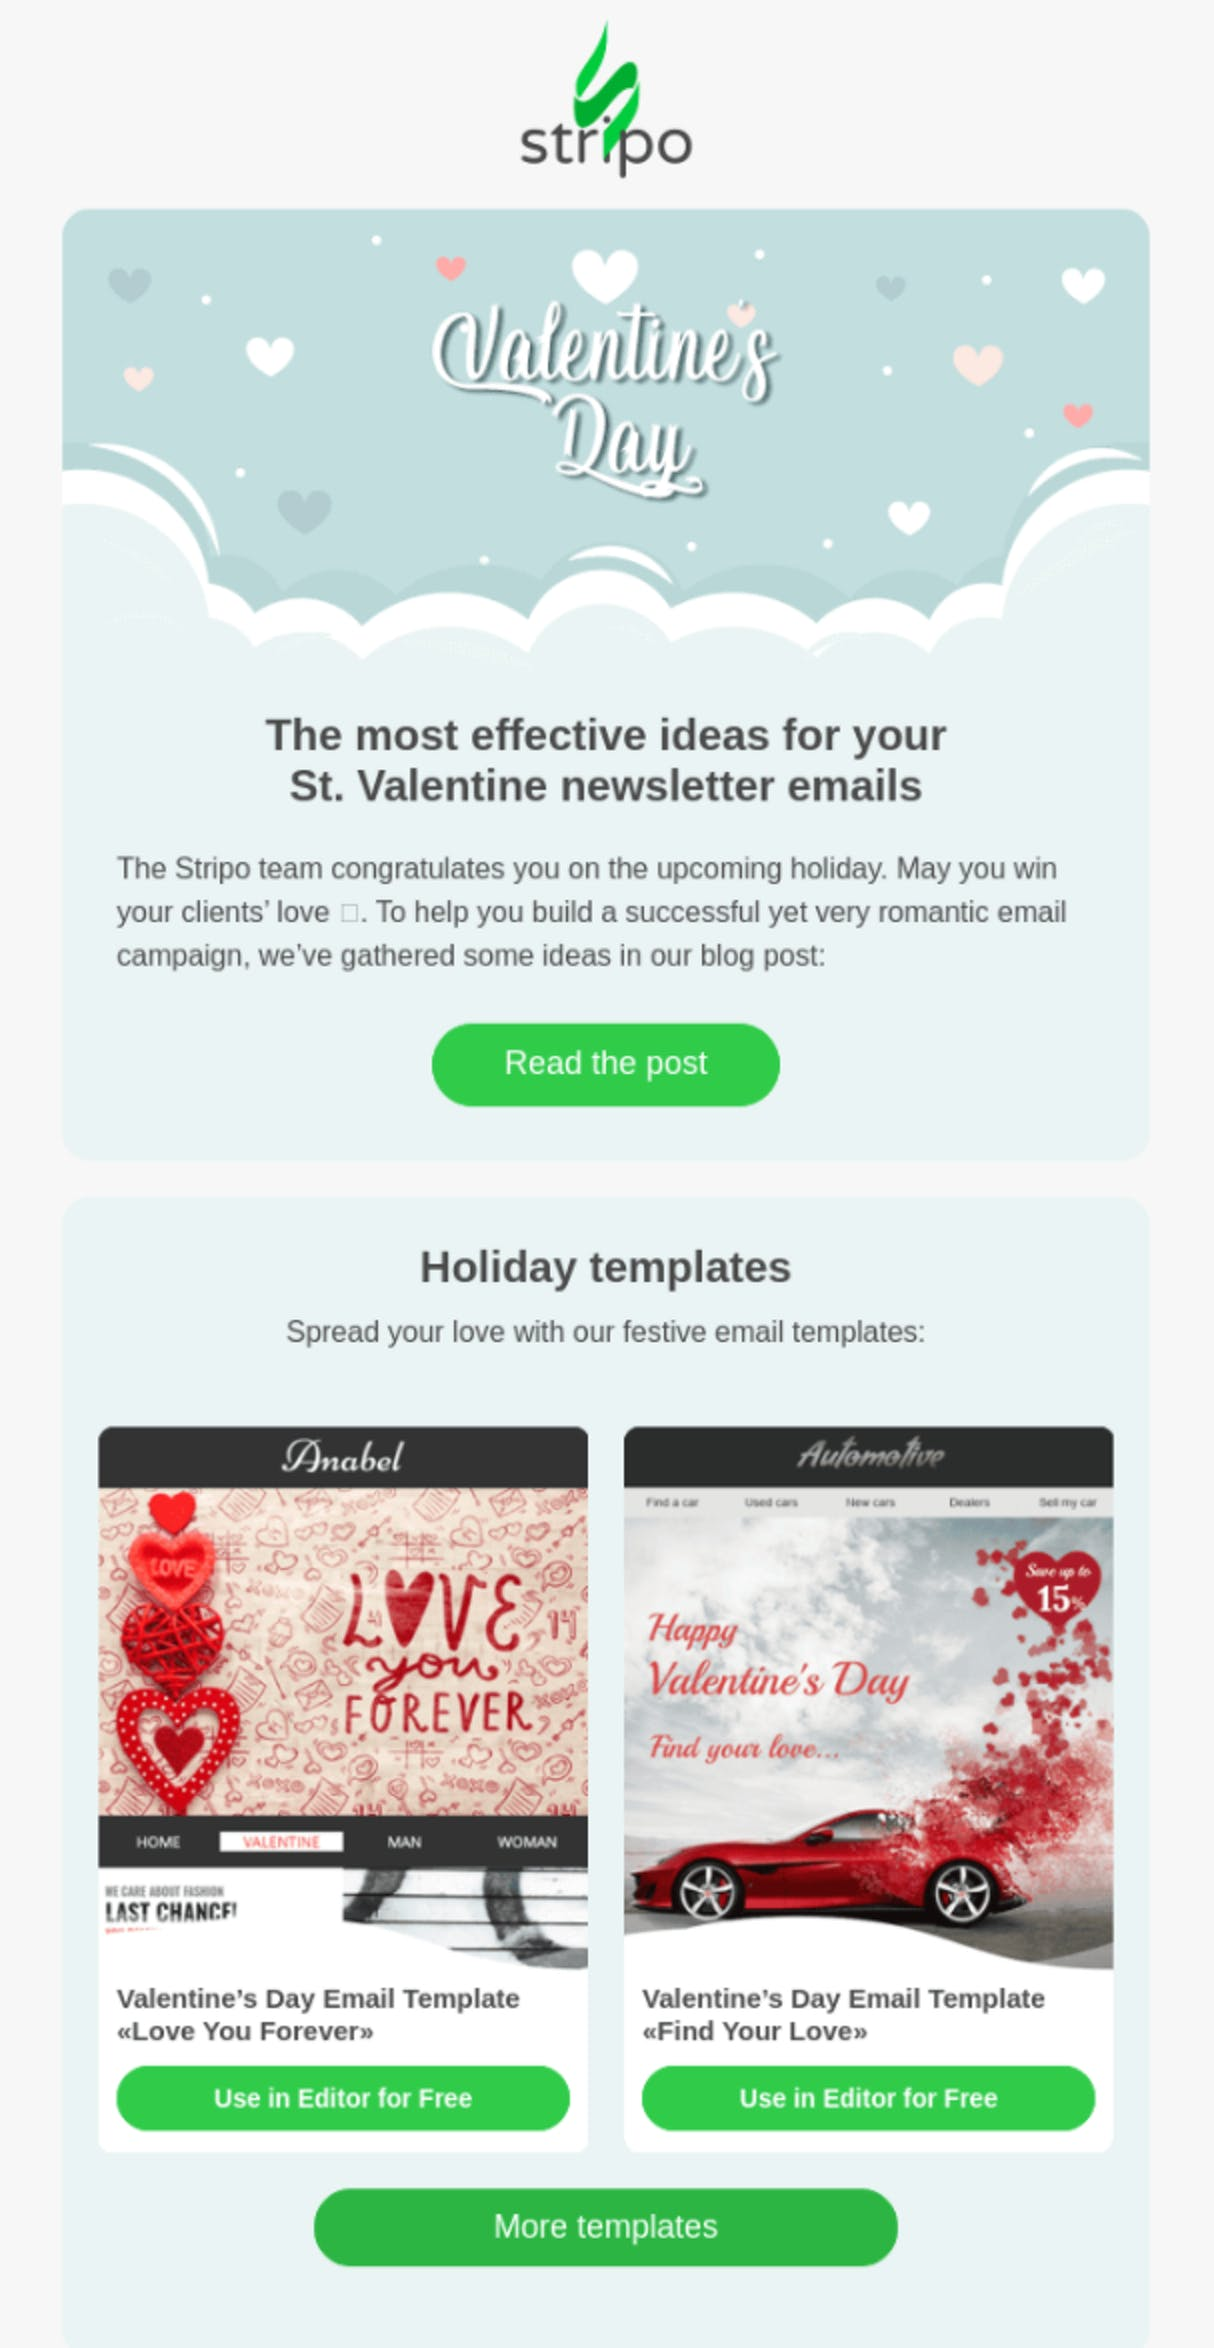 example valentine's day email from stripo